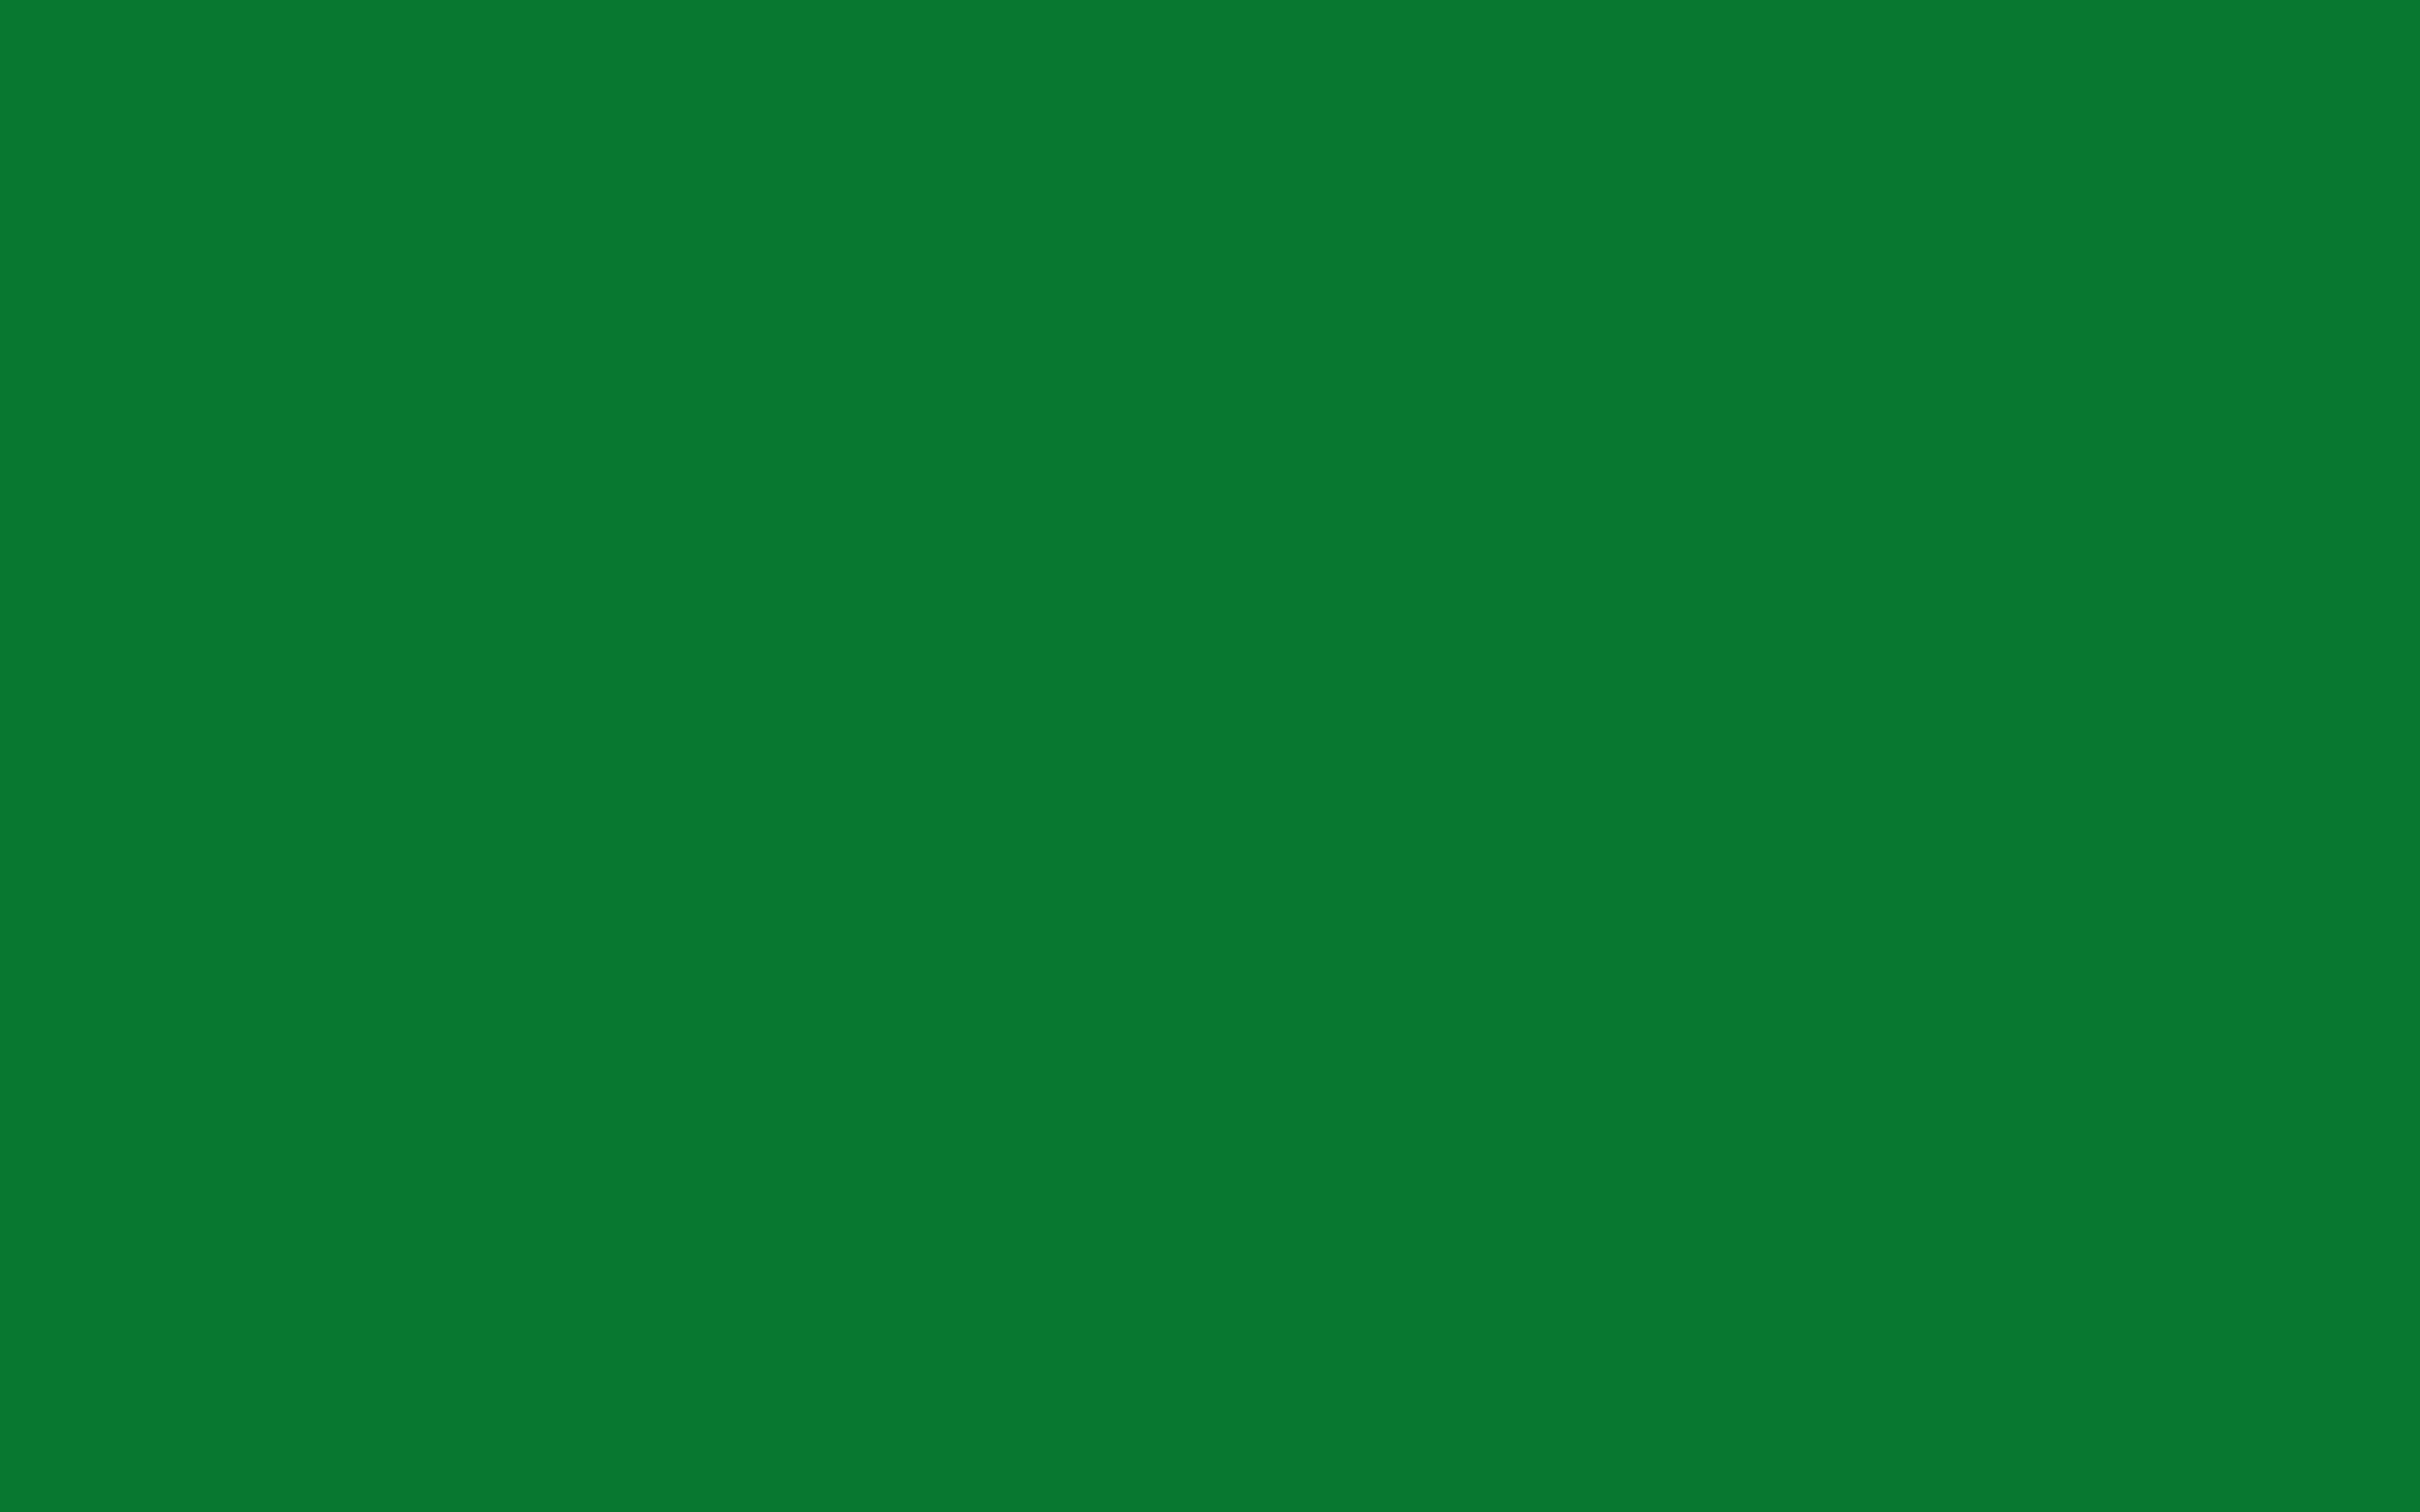 2880x1800 - Solid Green 22